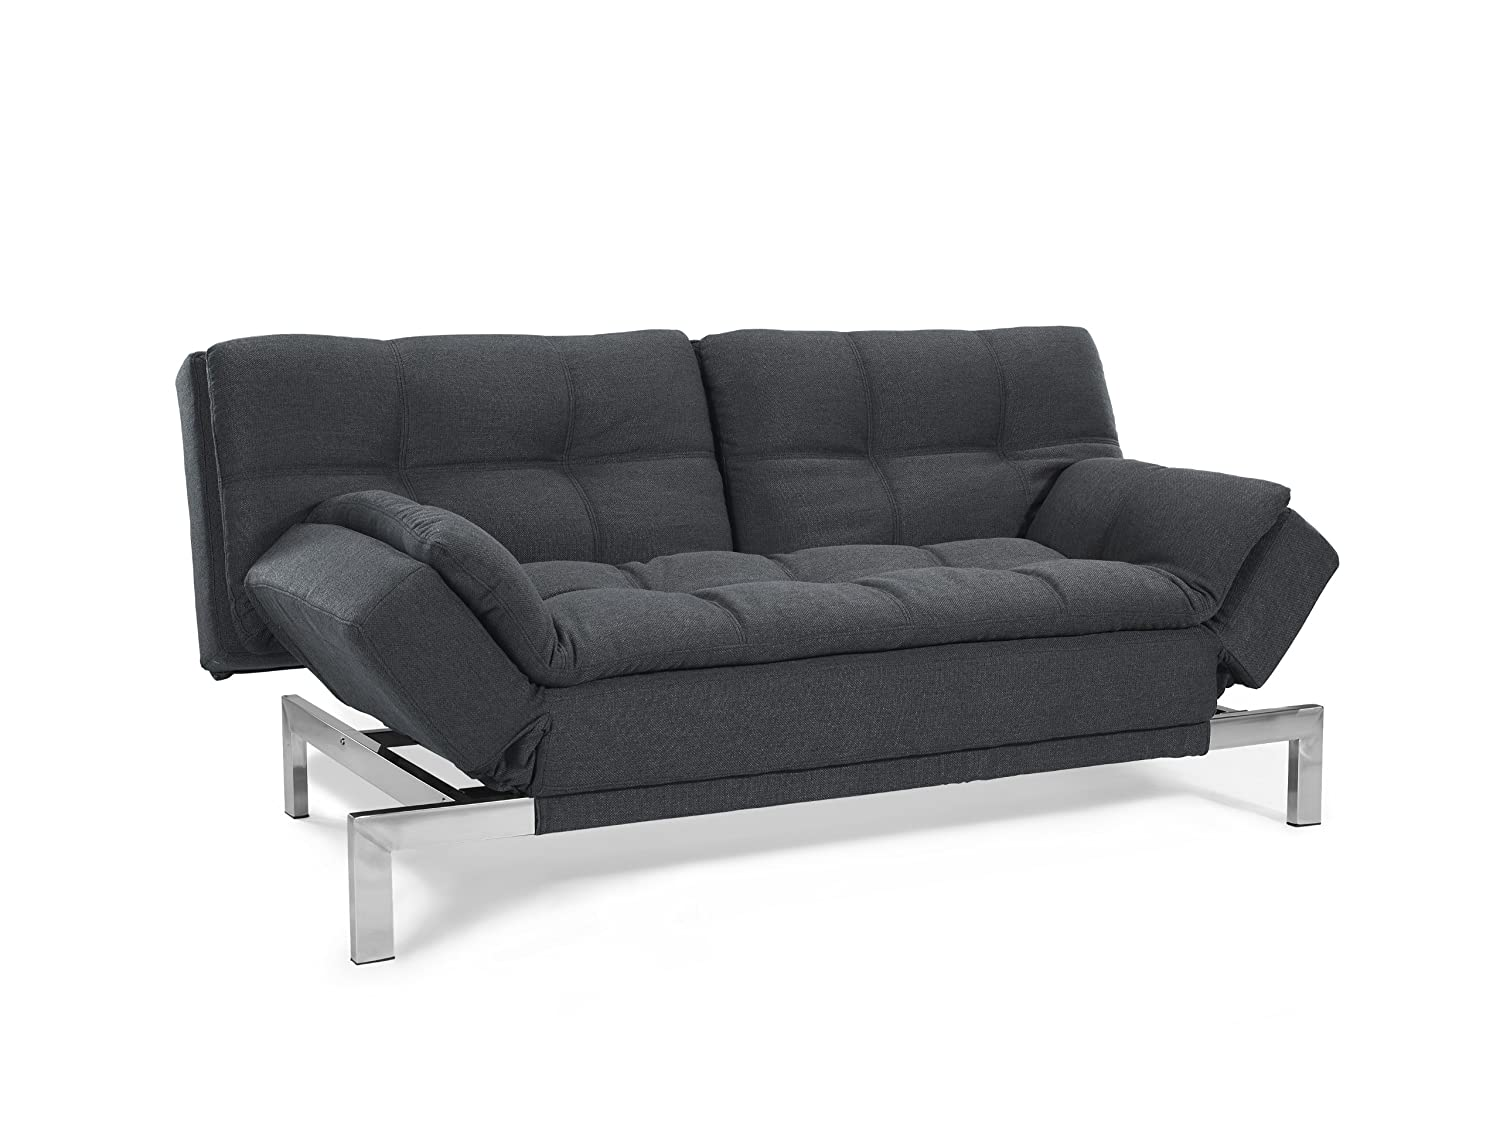 leather dealers furniture palisades inch room couch sofa living oppenhe mattress king serta sets upholstery your price for attractive icomfort decor hughes